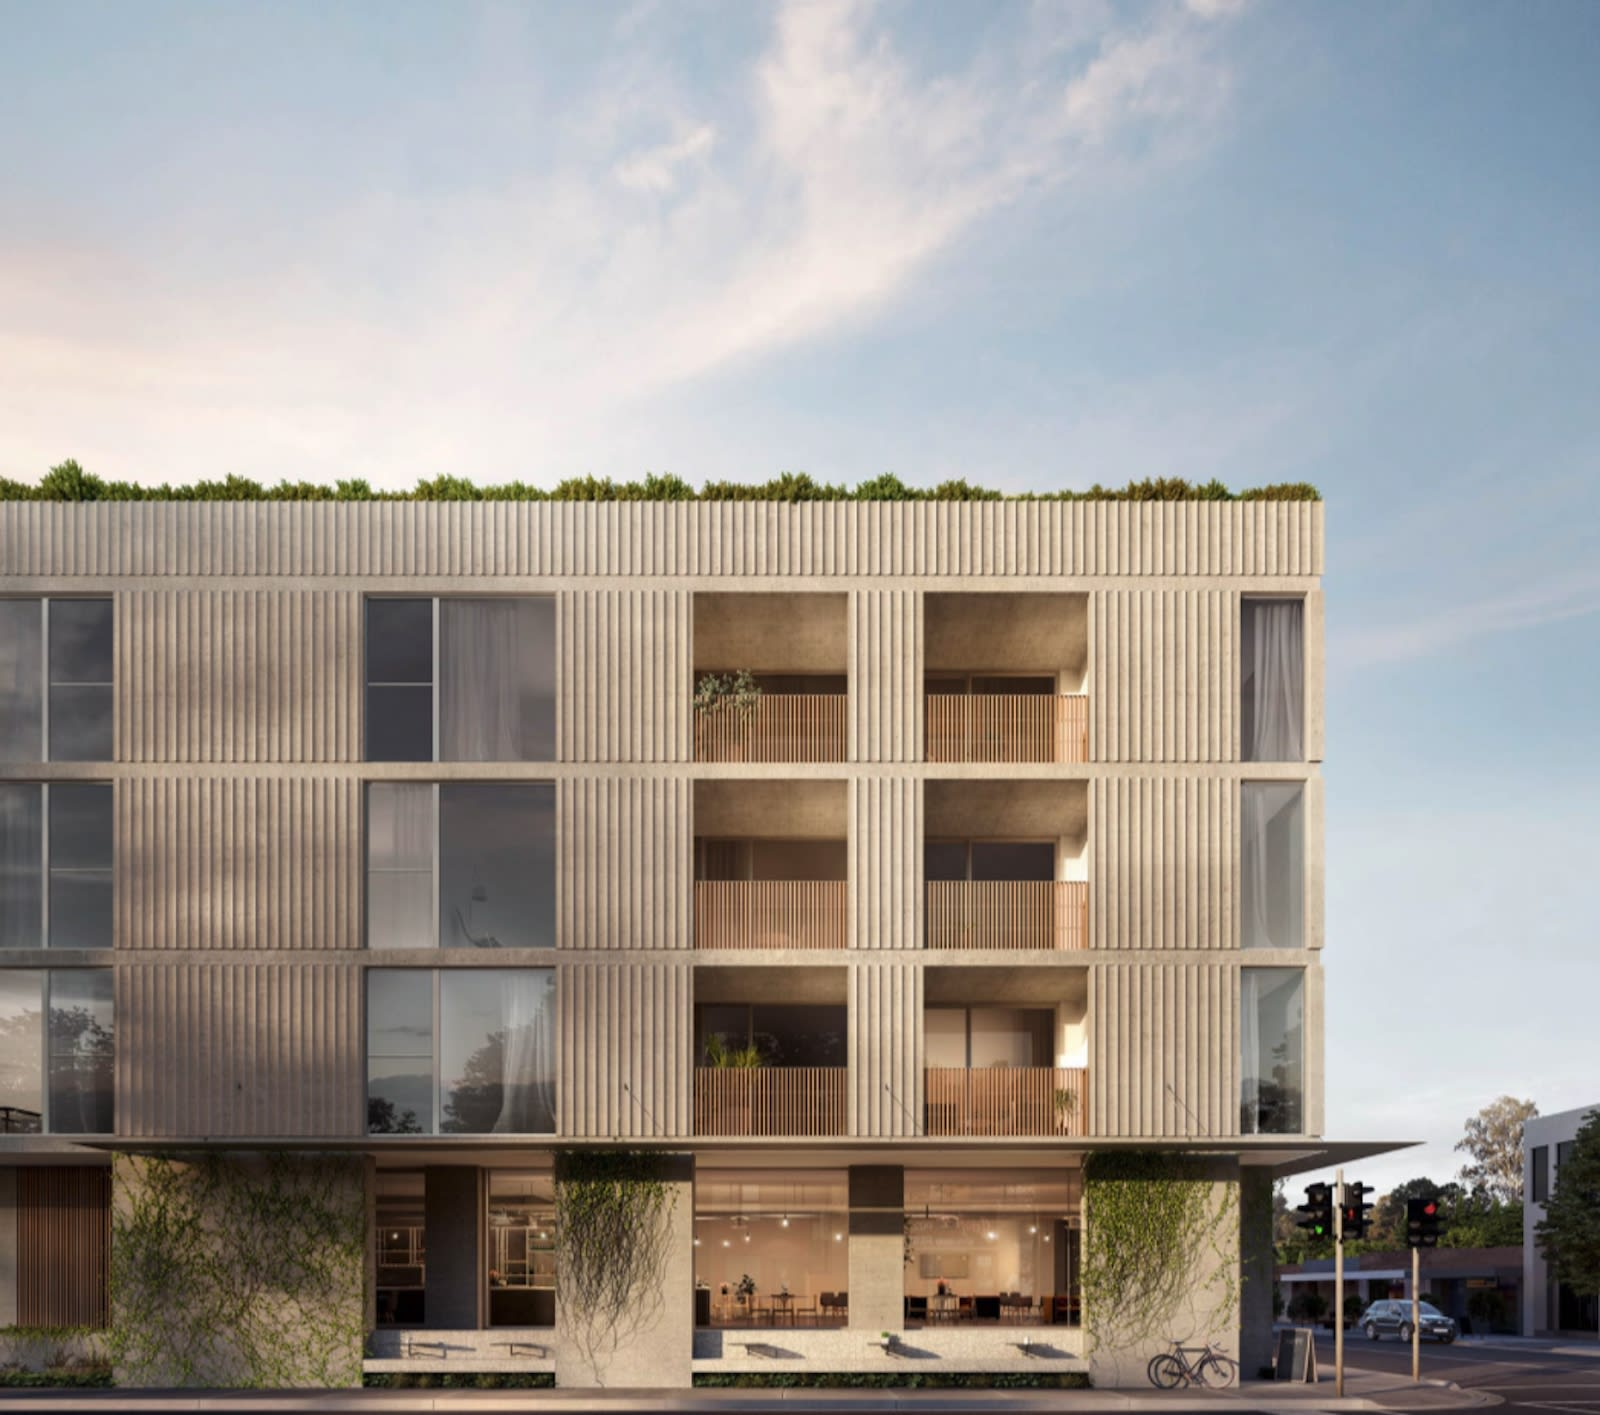 Top six apartments you can buy in Melbourne's south-east